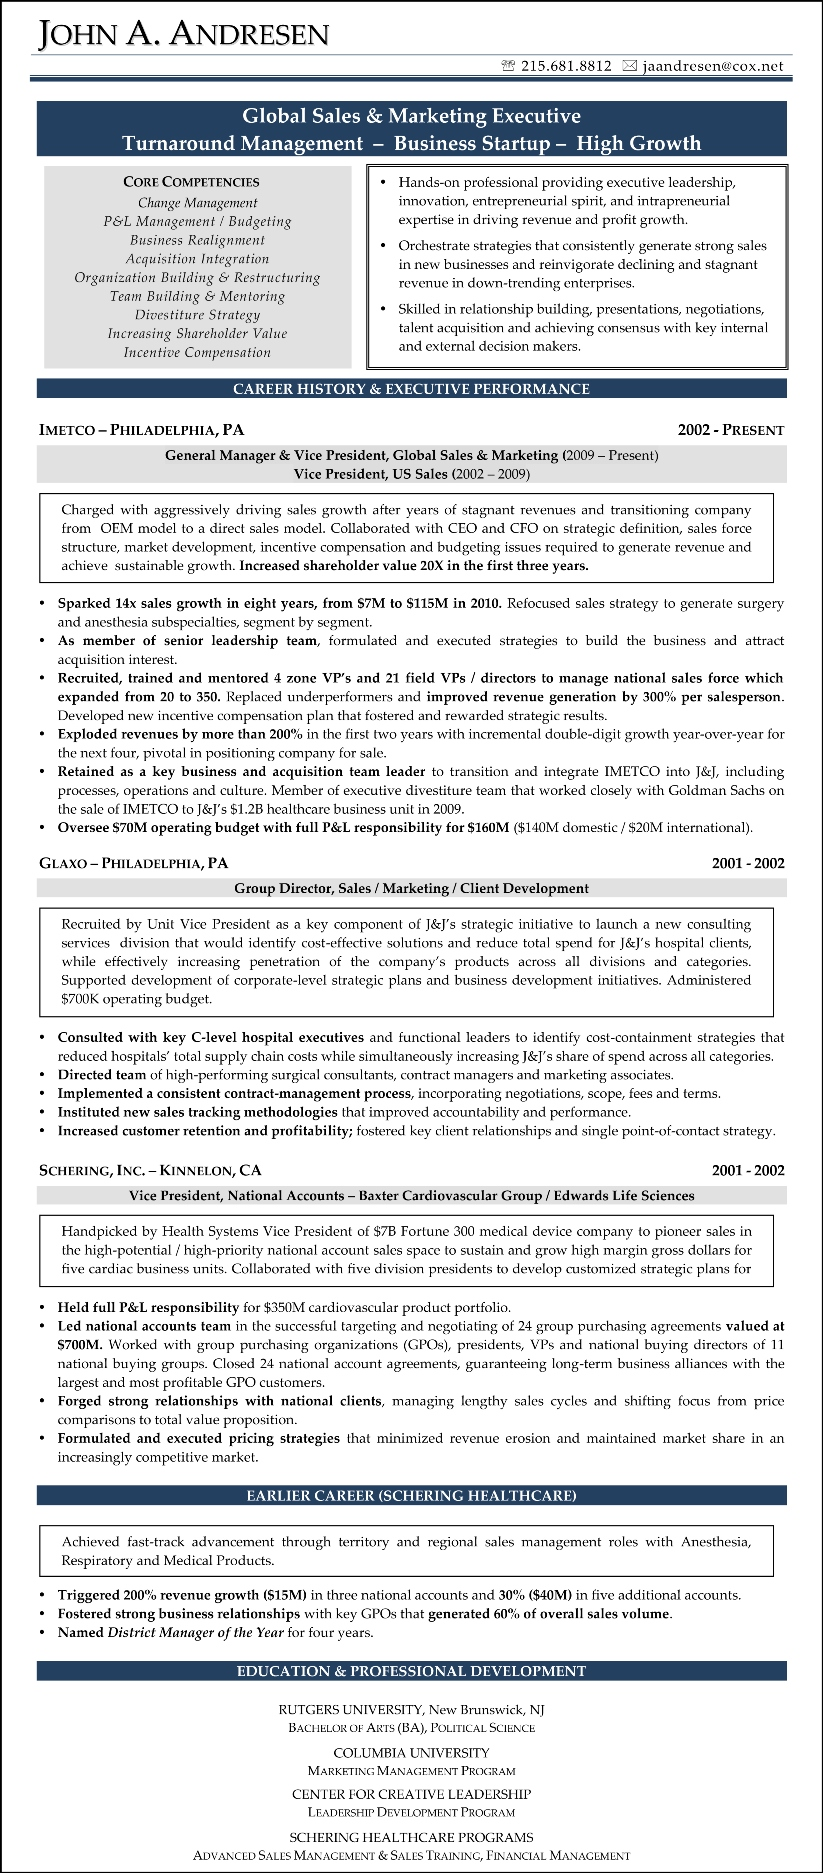 Global Operations Director (COO) – Chief Operations Officer Resume Sample